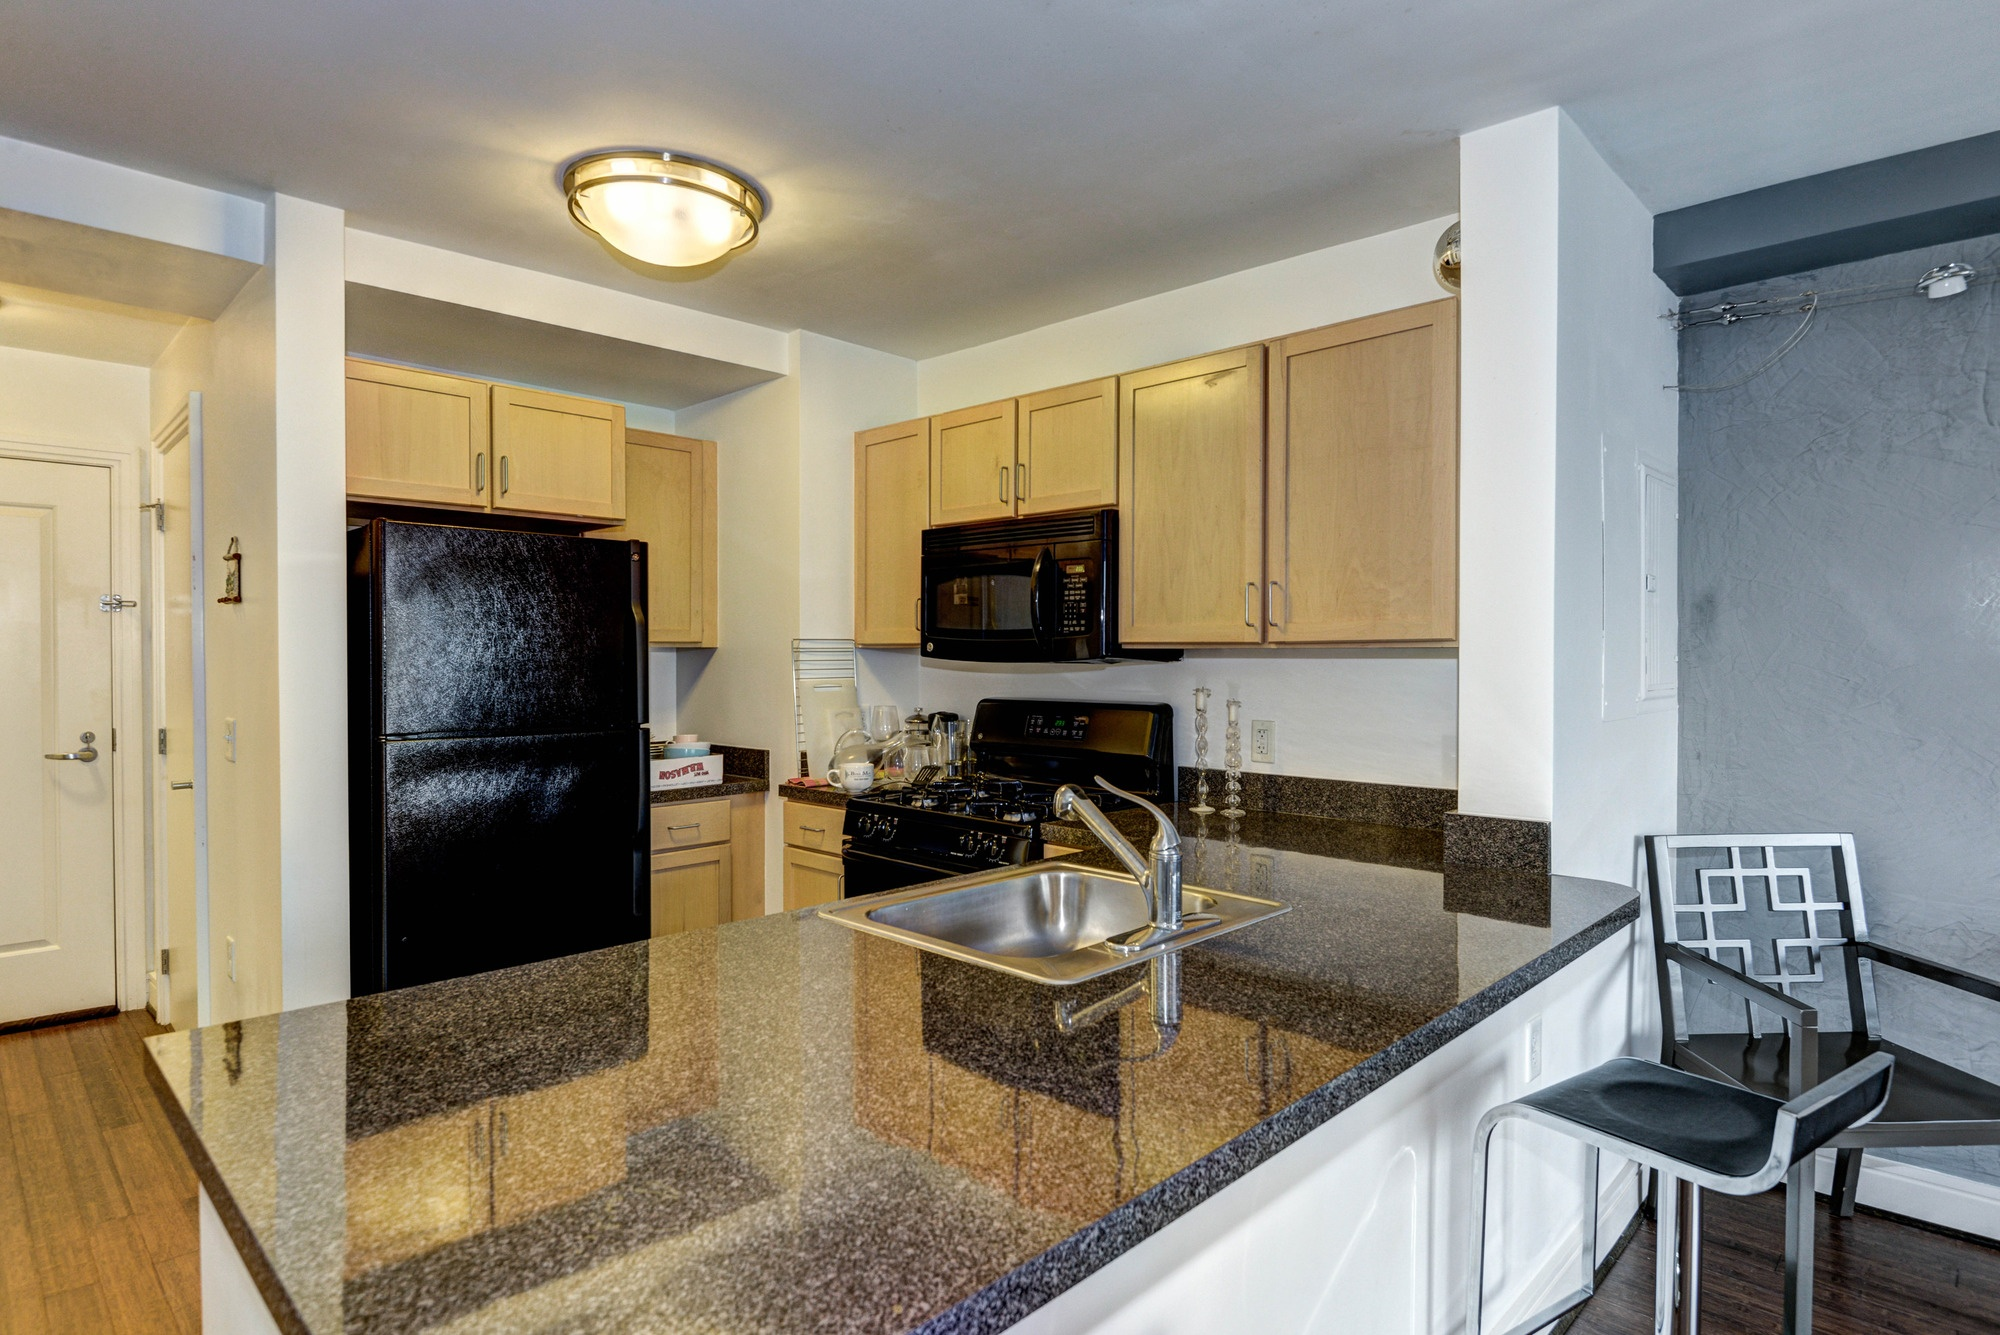 SOLD: DC Waterfront 1 Bedroom Condo